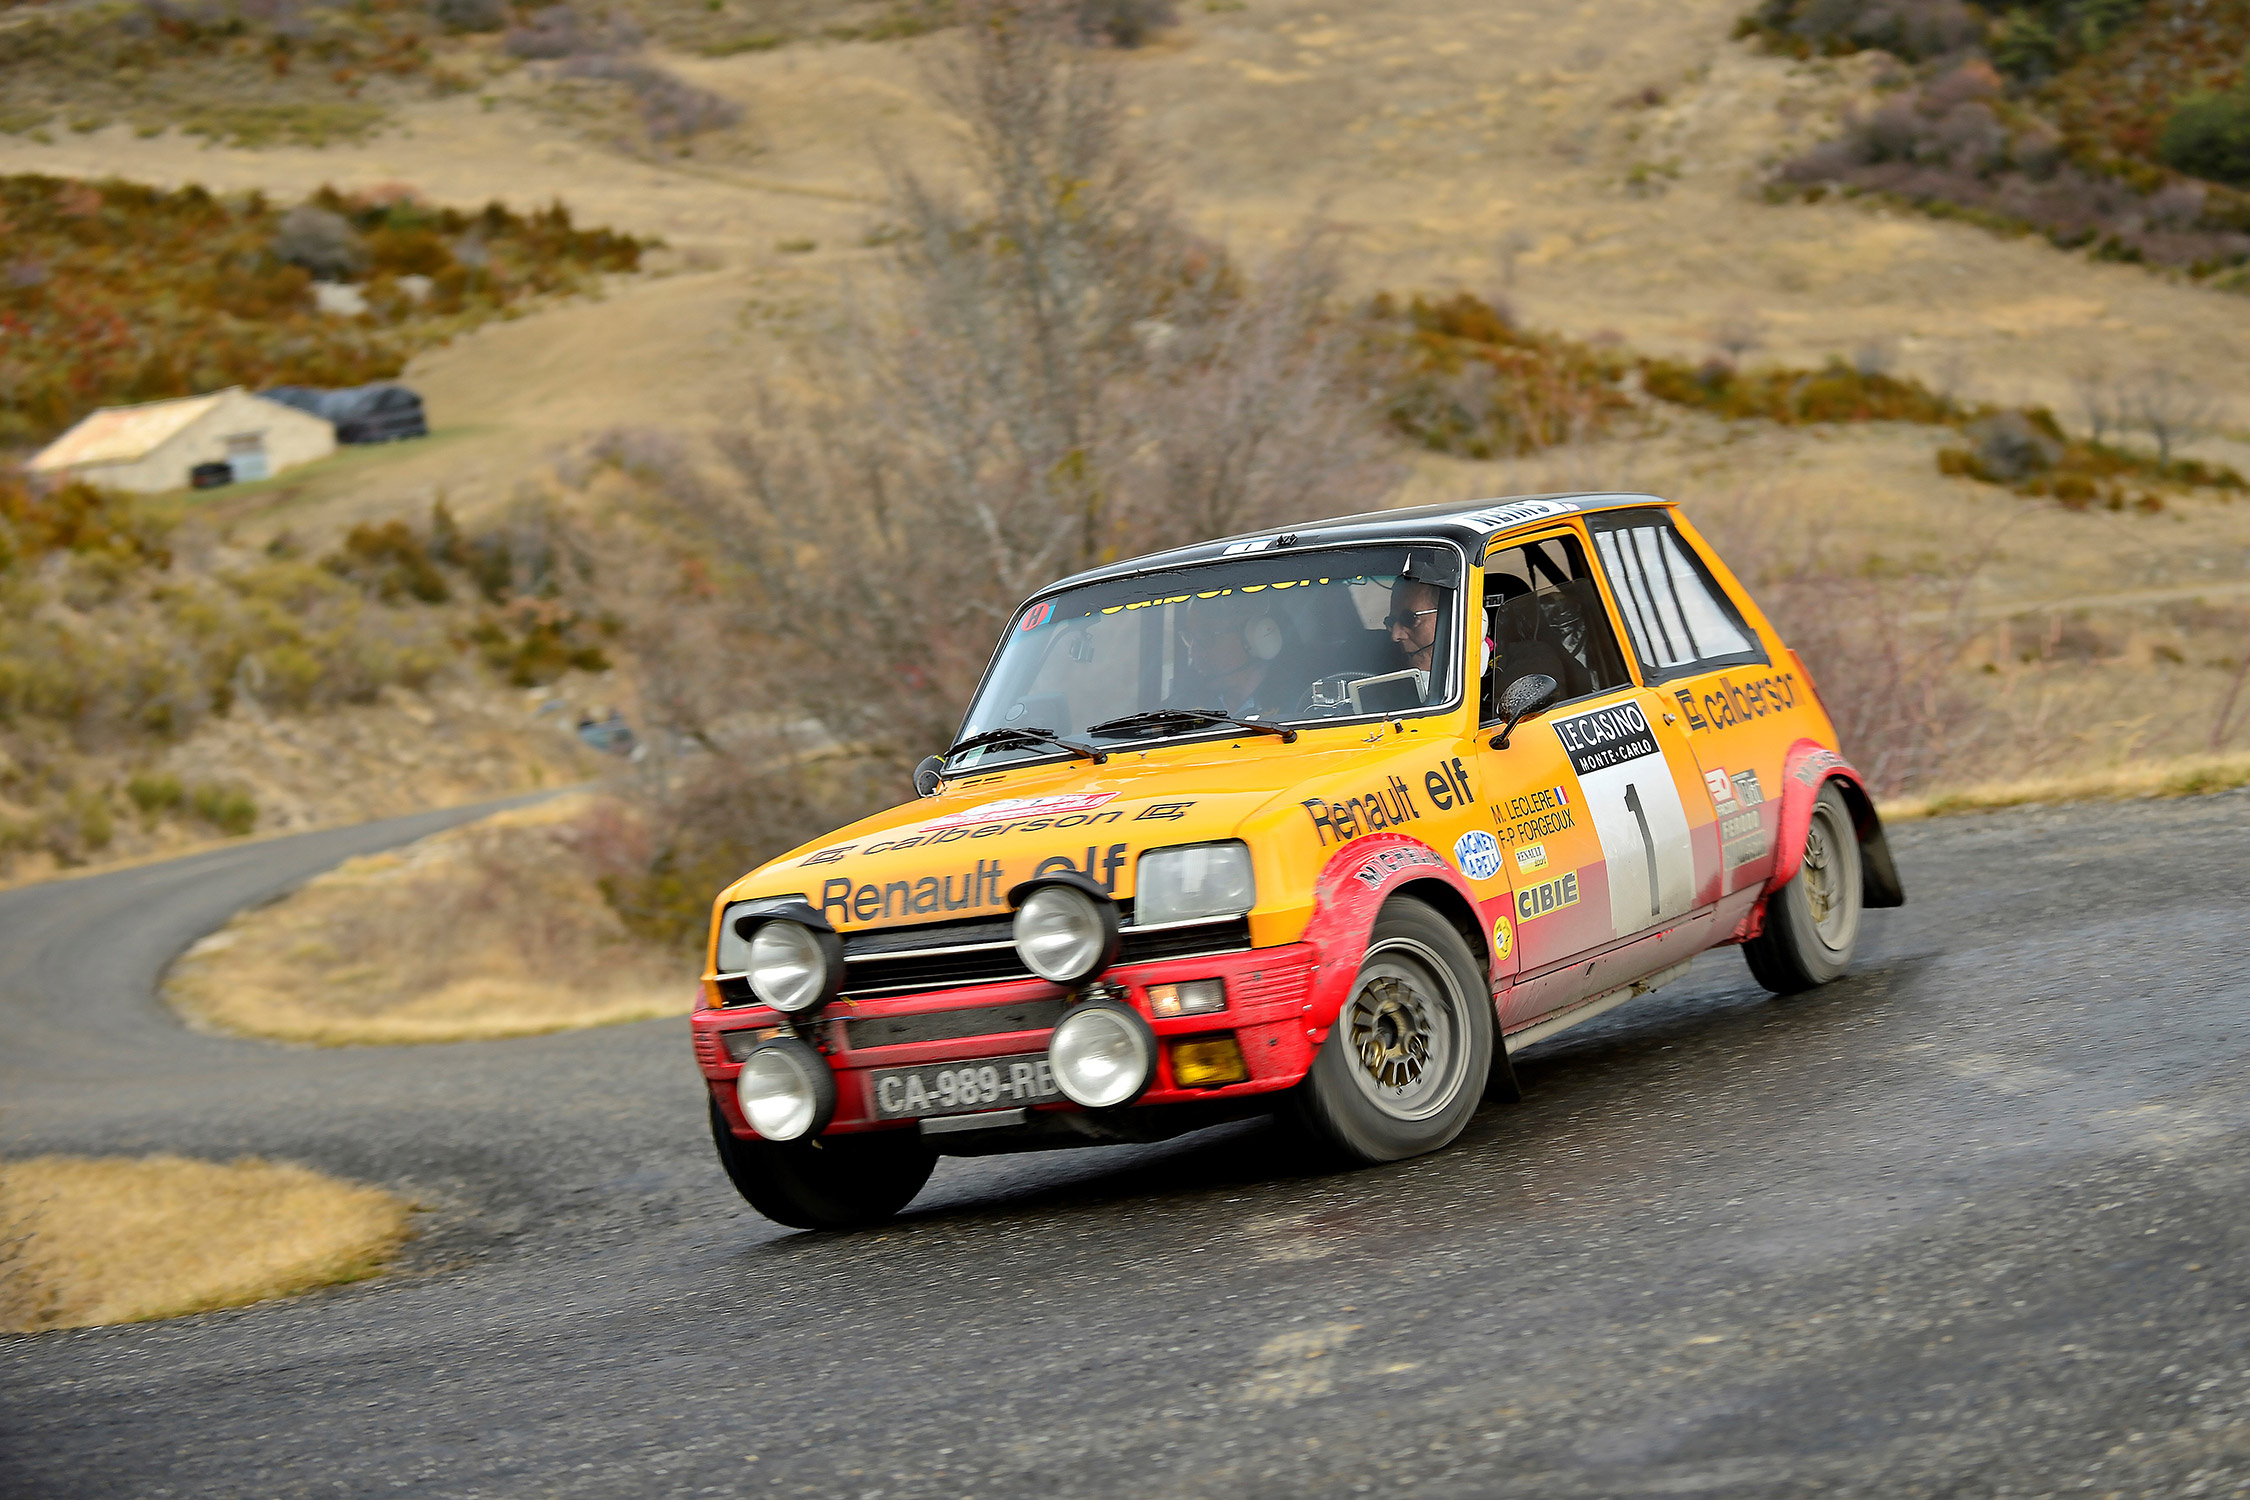 fiat 125 rally video html with 19035 103989 on Fictitious Motorcycle further 19035 103989 likewise 25 Fiat Ritmo 125 Tc Abarth 1982 118 Lm089 3794386271303 furthermore Harley Davidson Sportster Iron 883 Noir Desir Essai Video 49334 further Mercedes Benz Lautomobile  pie 125 Anni.